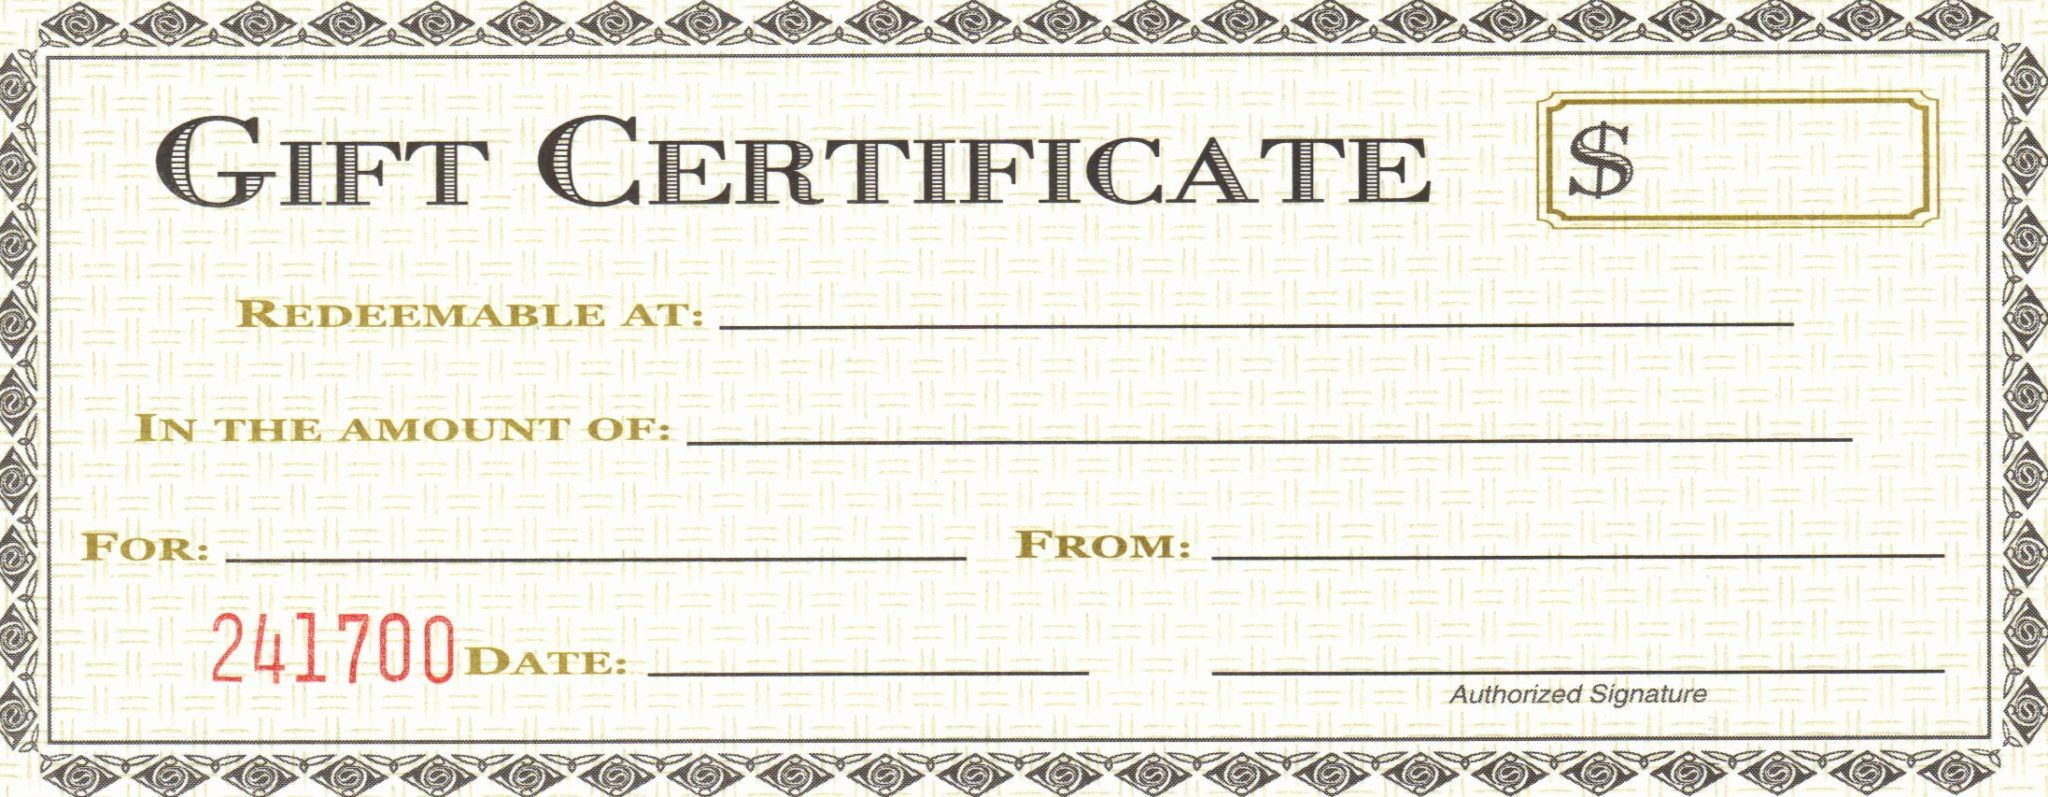 004 Remarkable Printable Gift Certificate Template High Resolution  Card Free Christma MassageFull